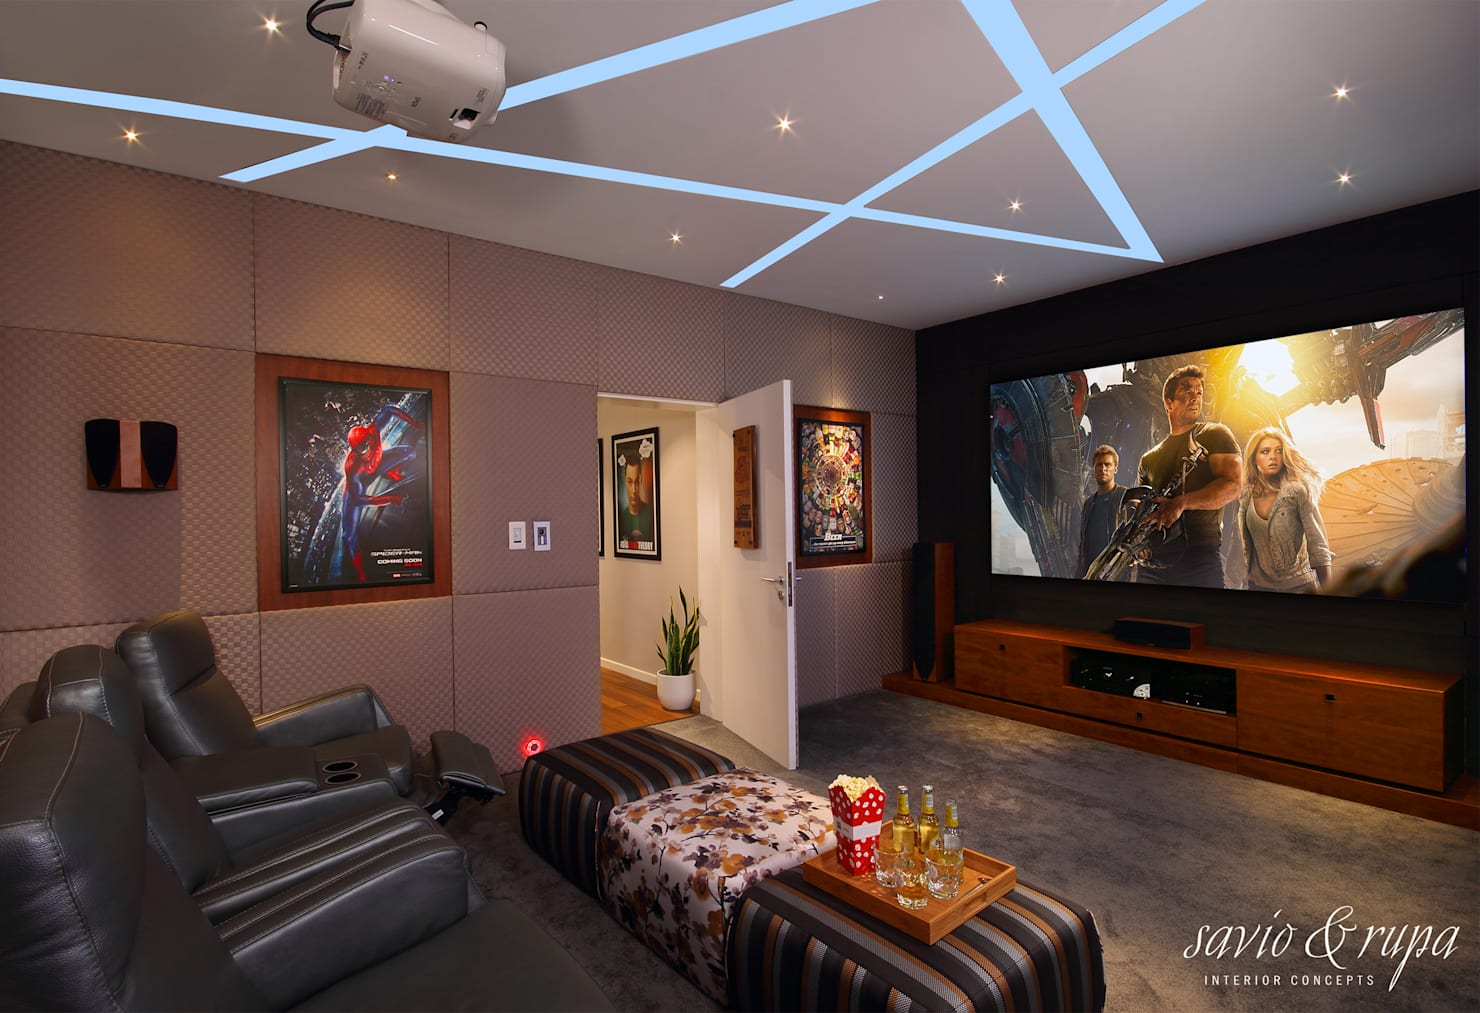 14 Amazing Home Theaters that You Want to Have in Your Place